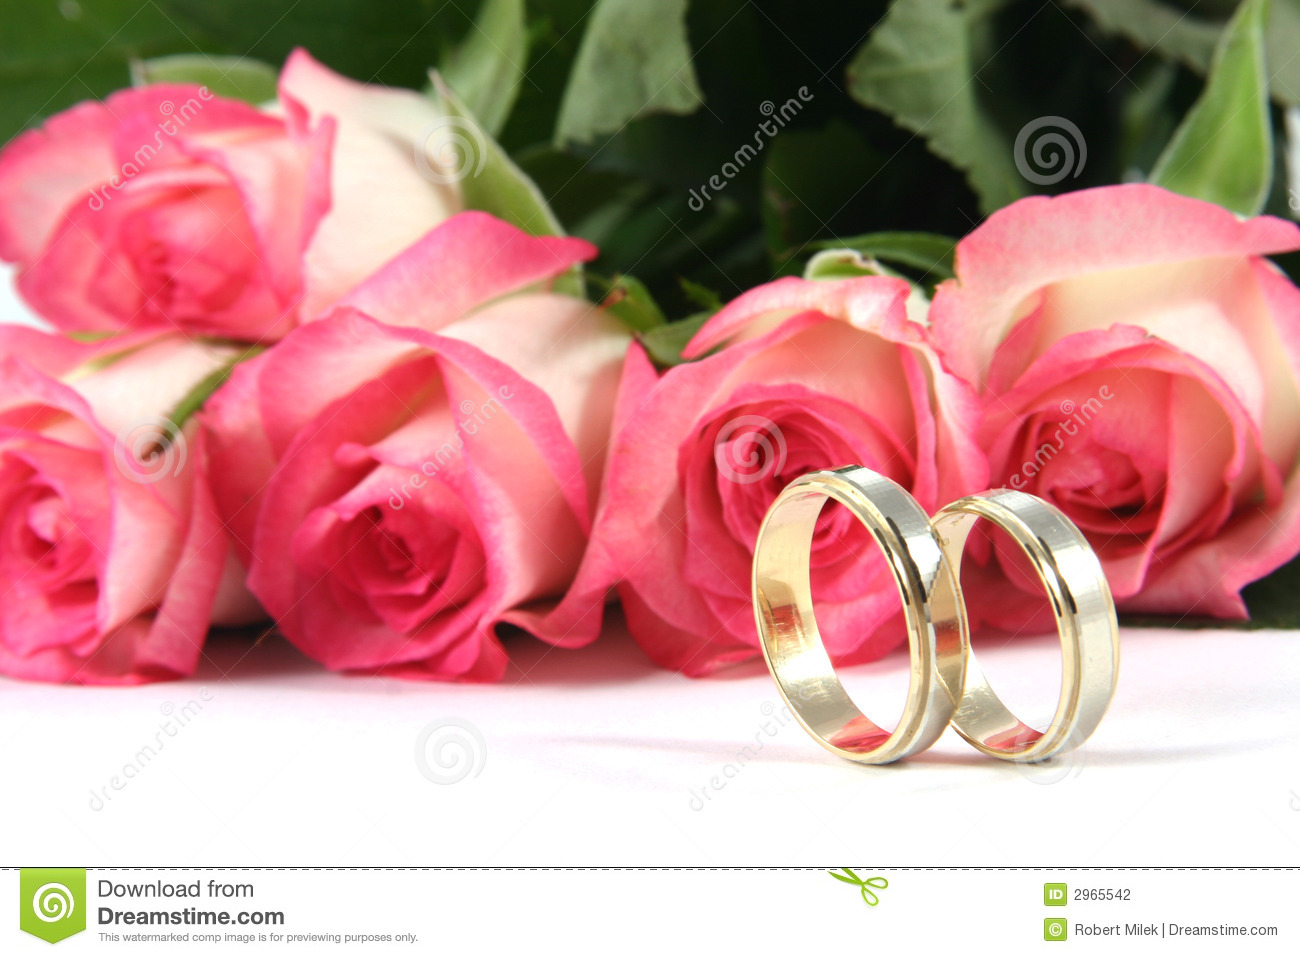 stock photography wedding rings roses image rose wedding ring Wedding rings and roses